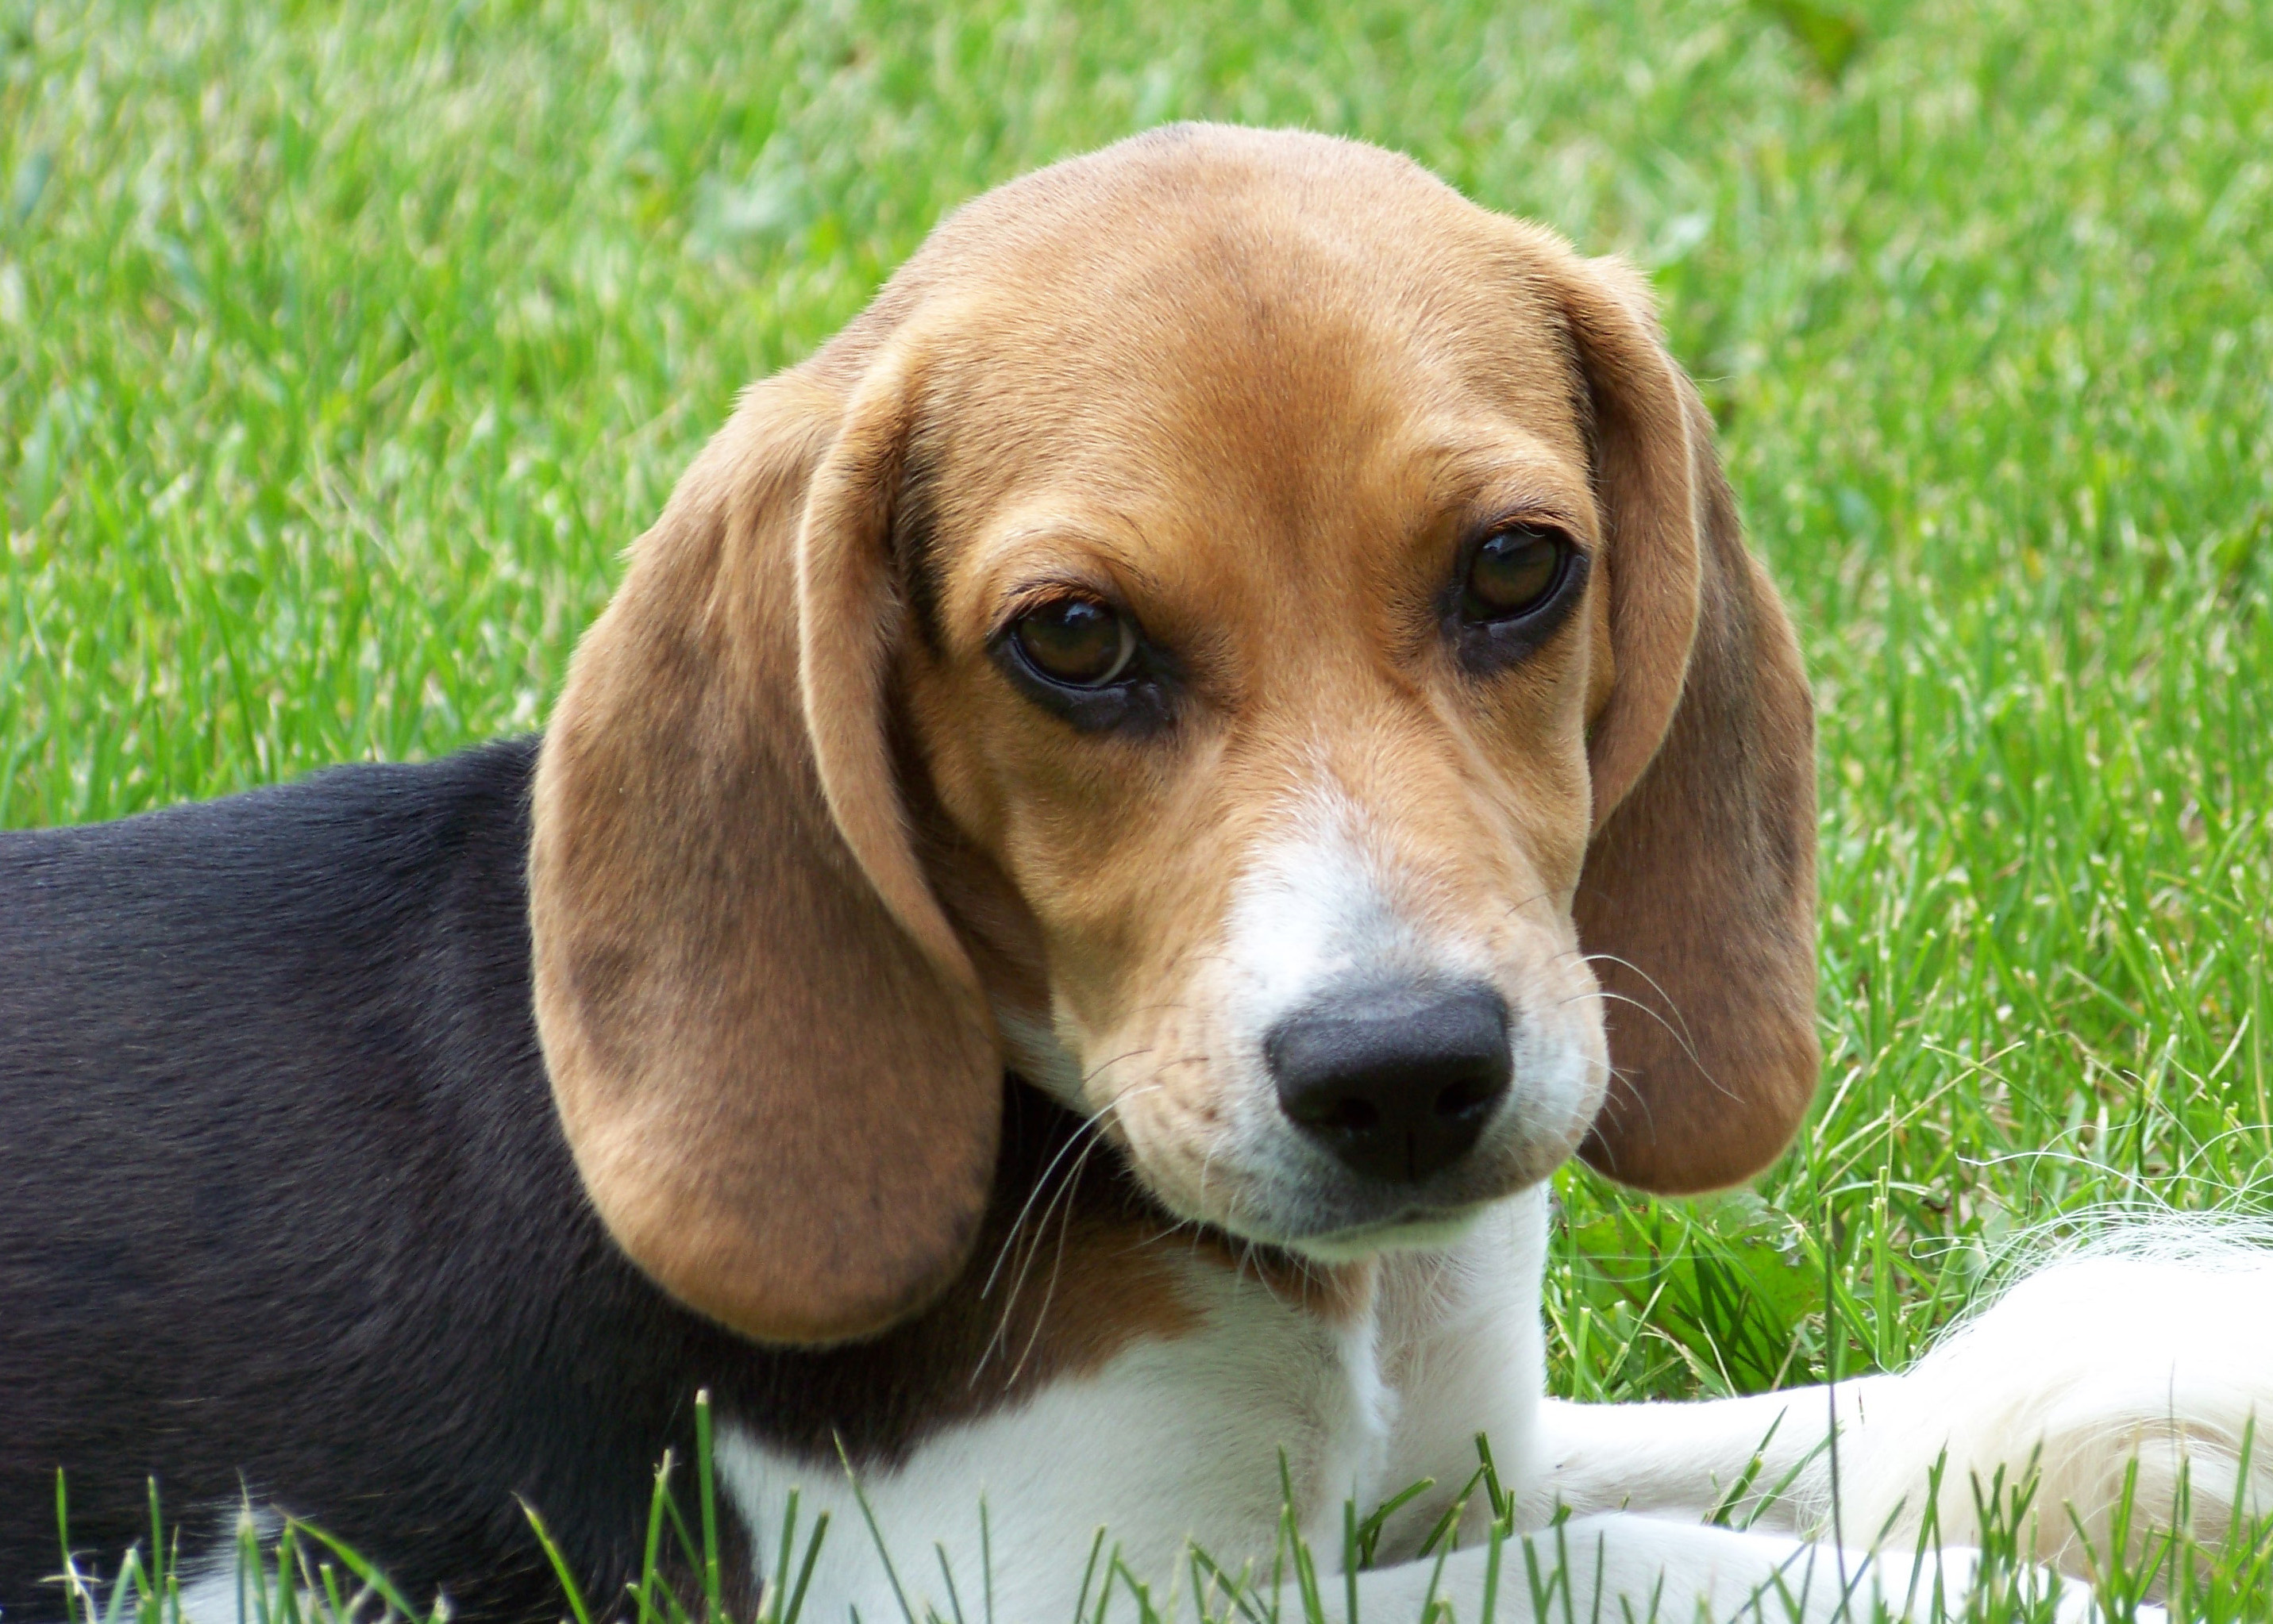 File:Cute beagle puppy lilly.jpg - Wikimedia Commons